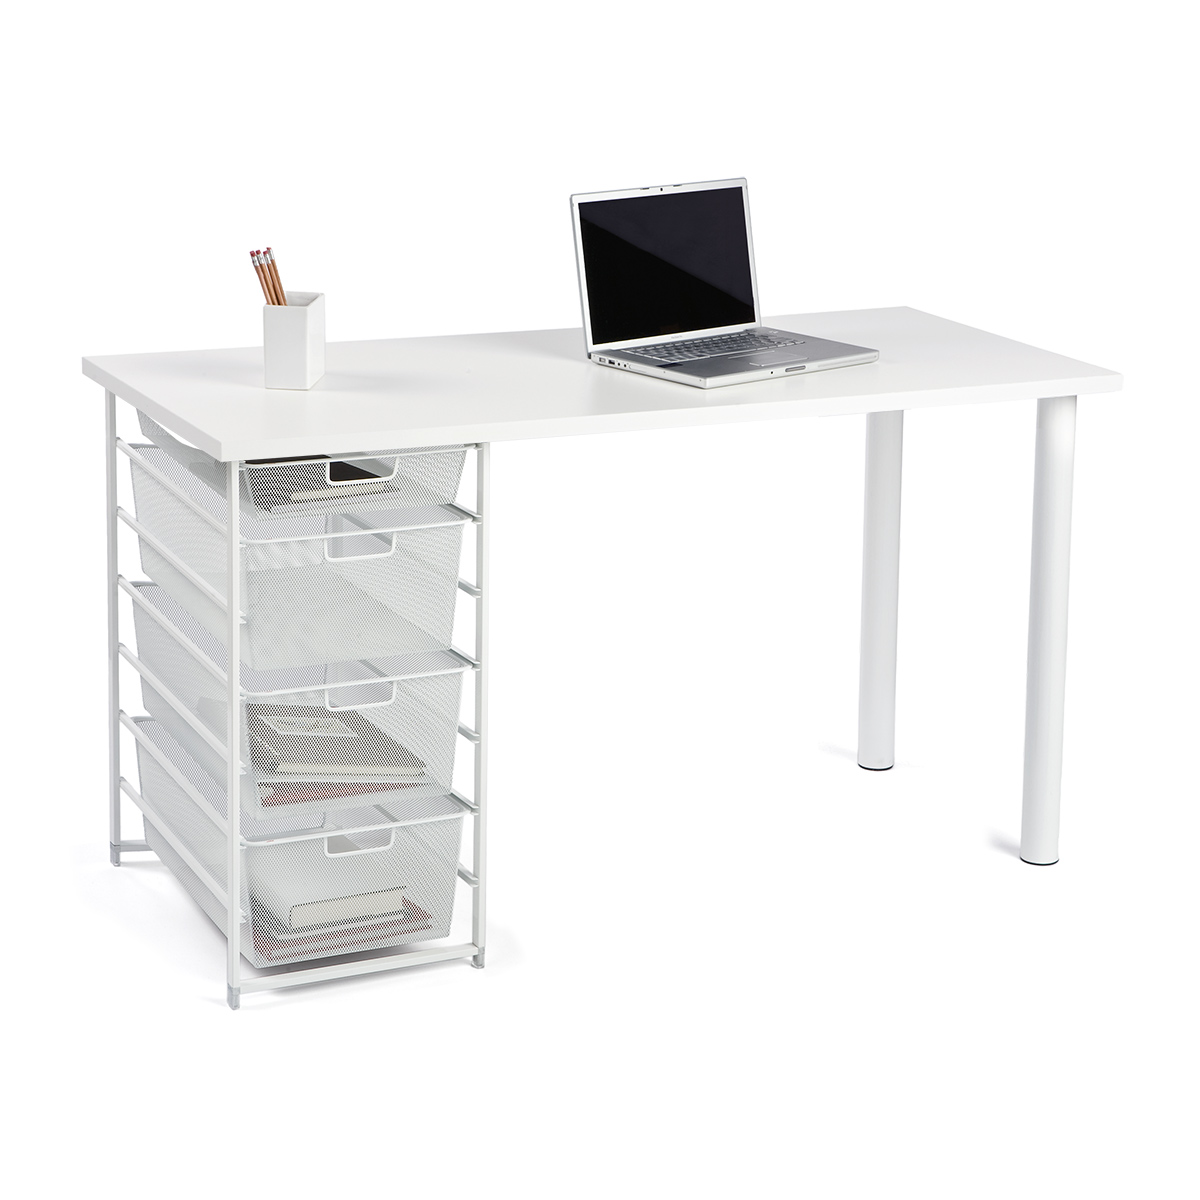 Elfa Desk Configuration Single Elfa